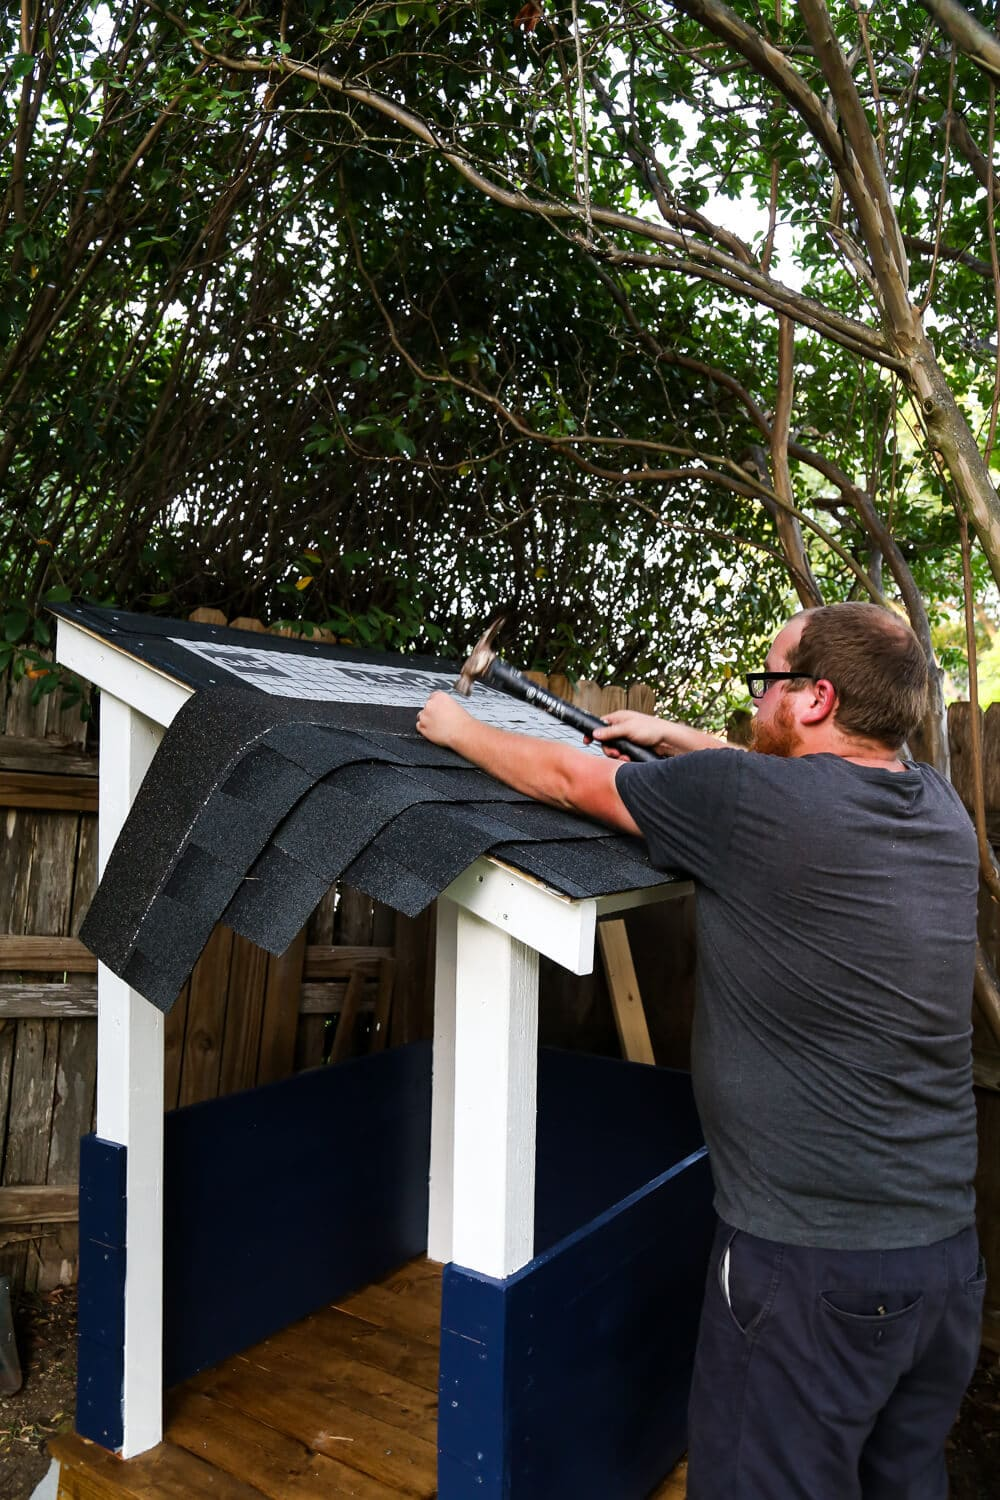 Installing playhouse roof shingles